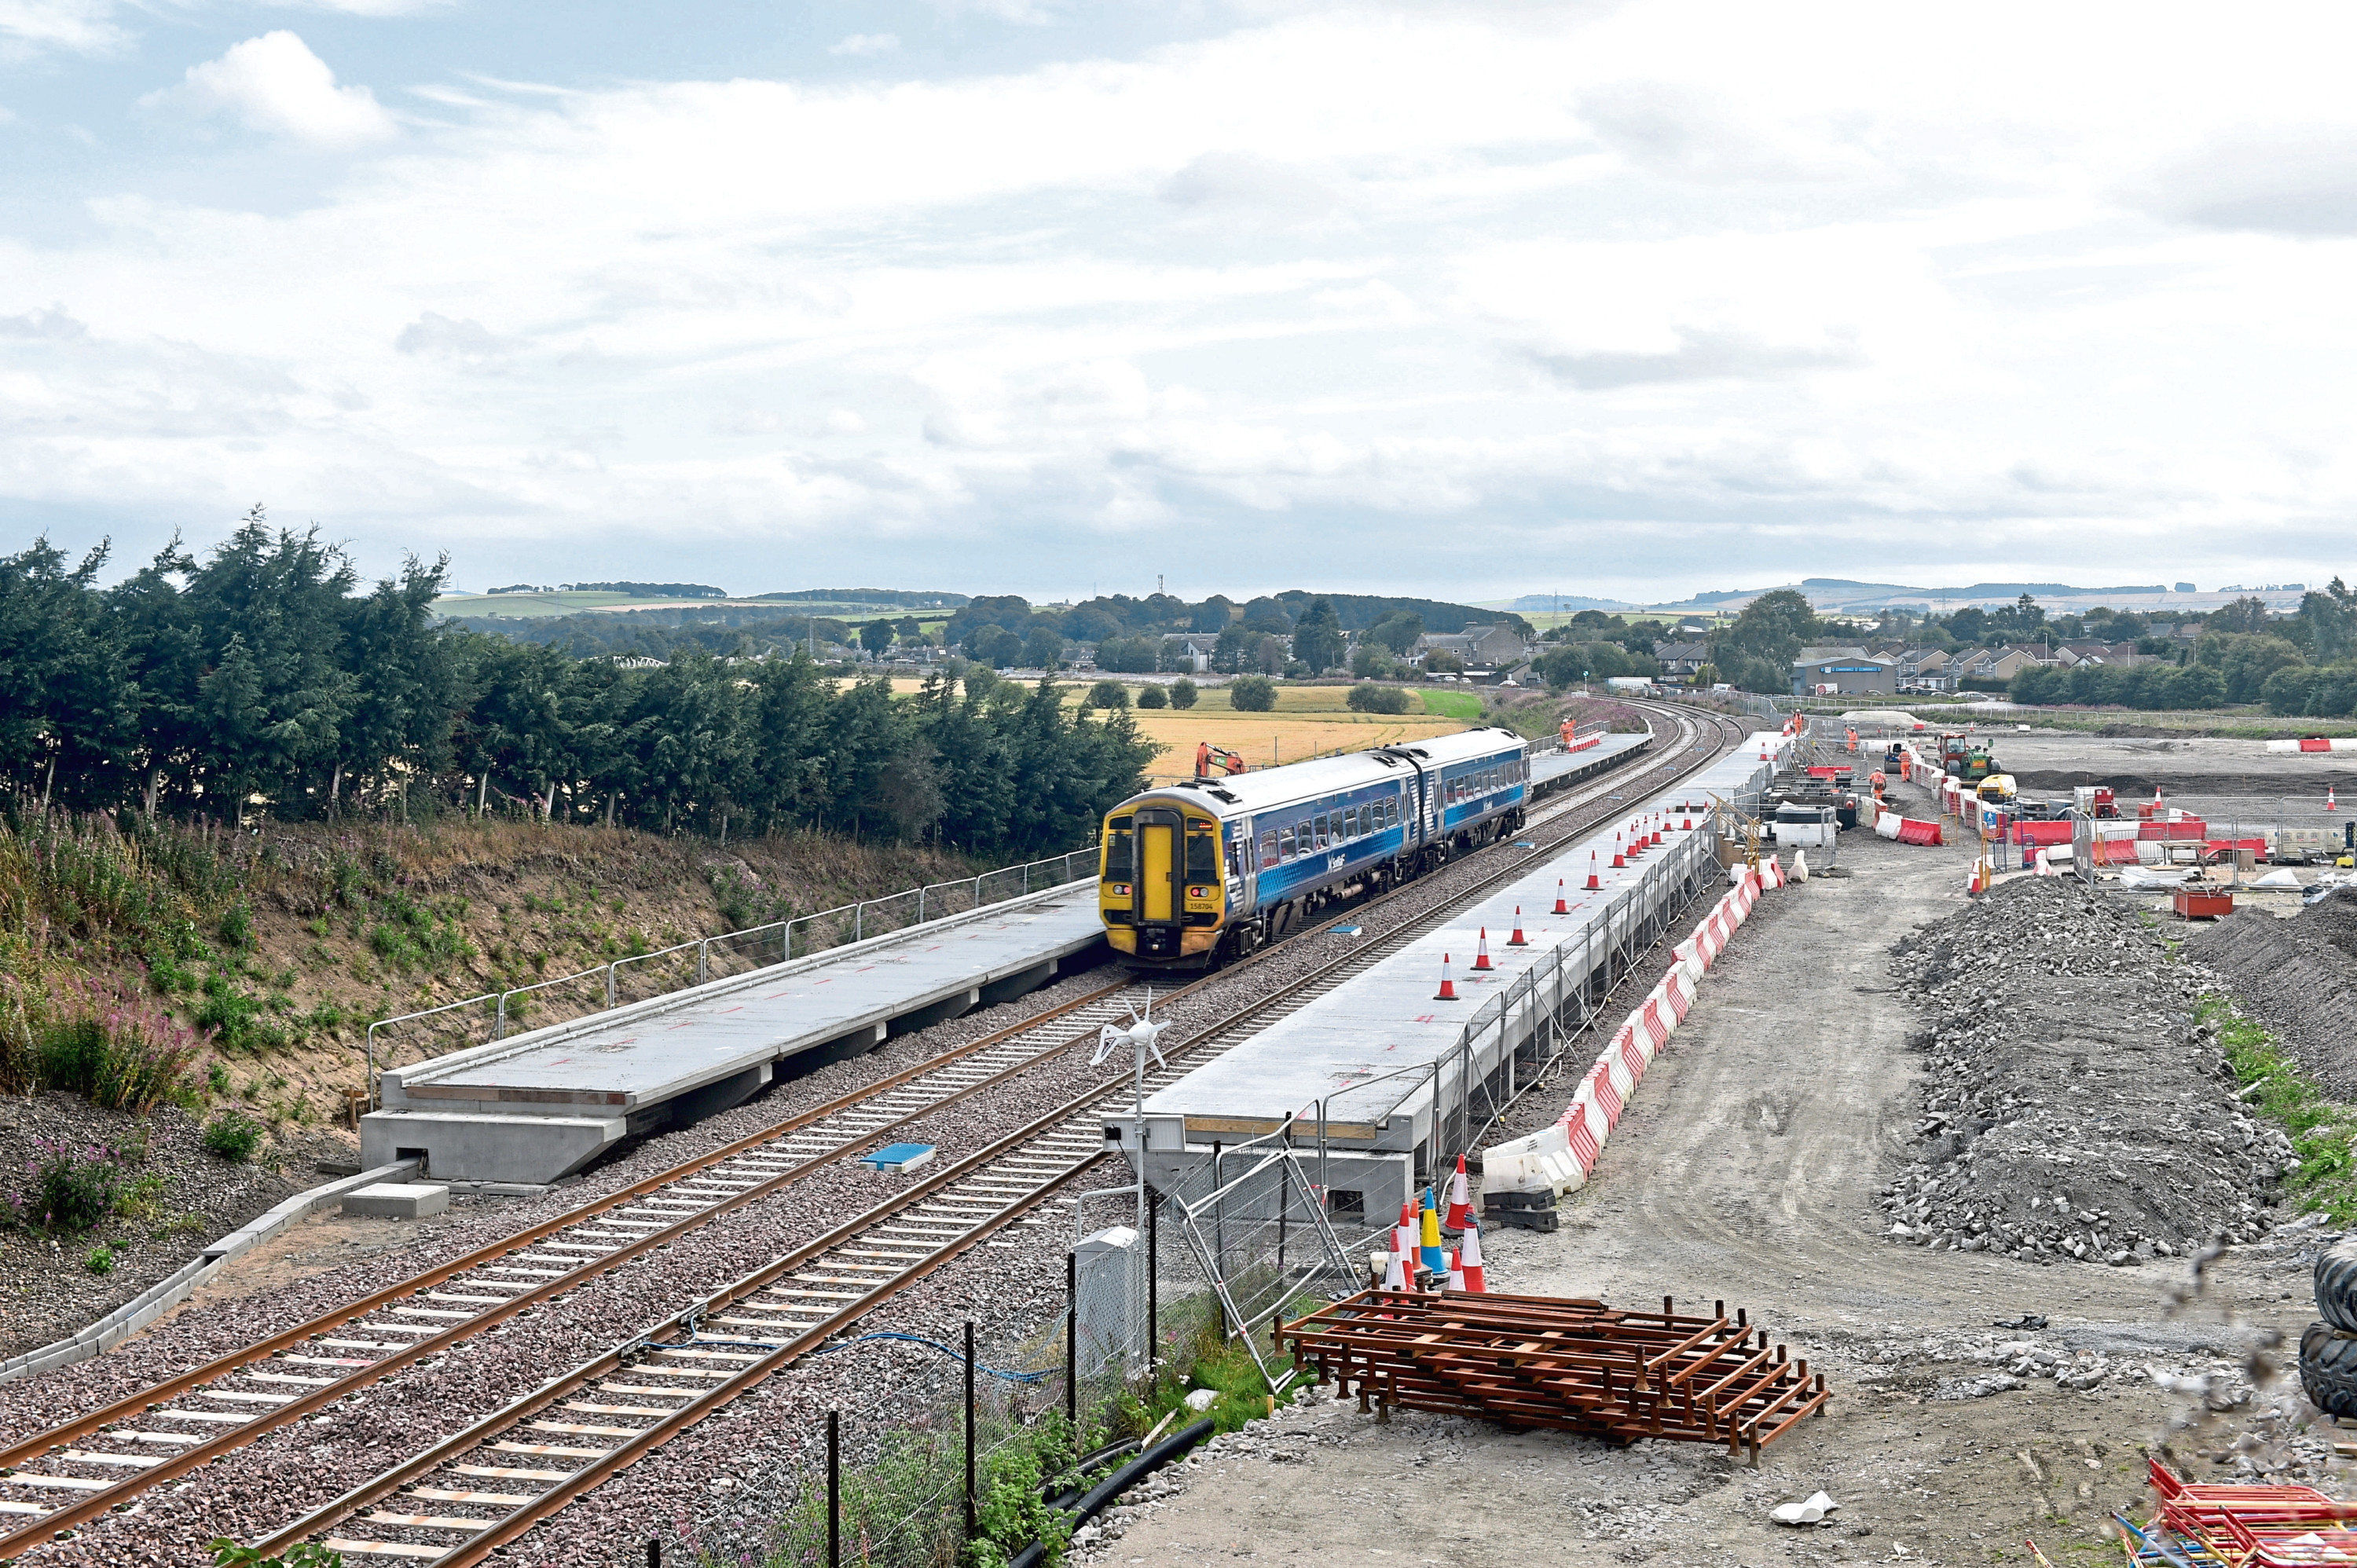 The new Kintore railway station under construction.